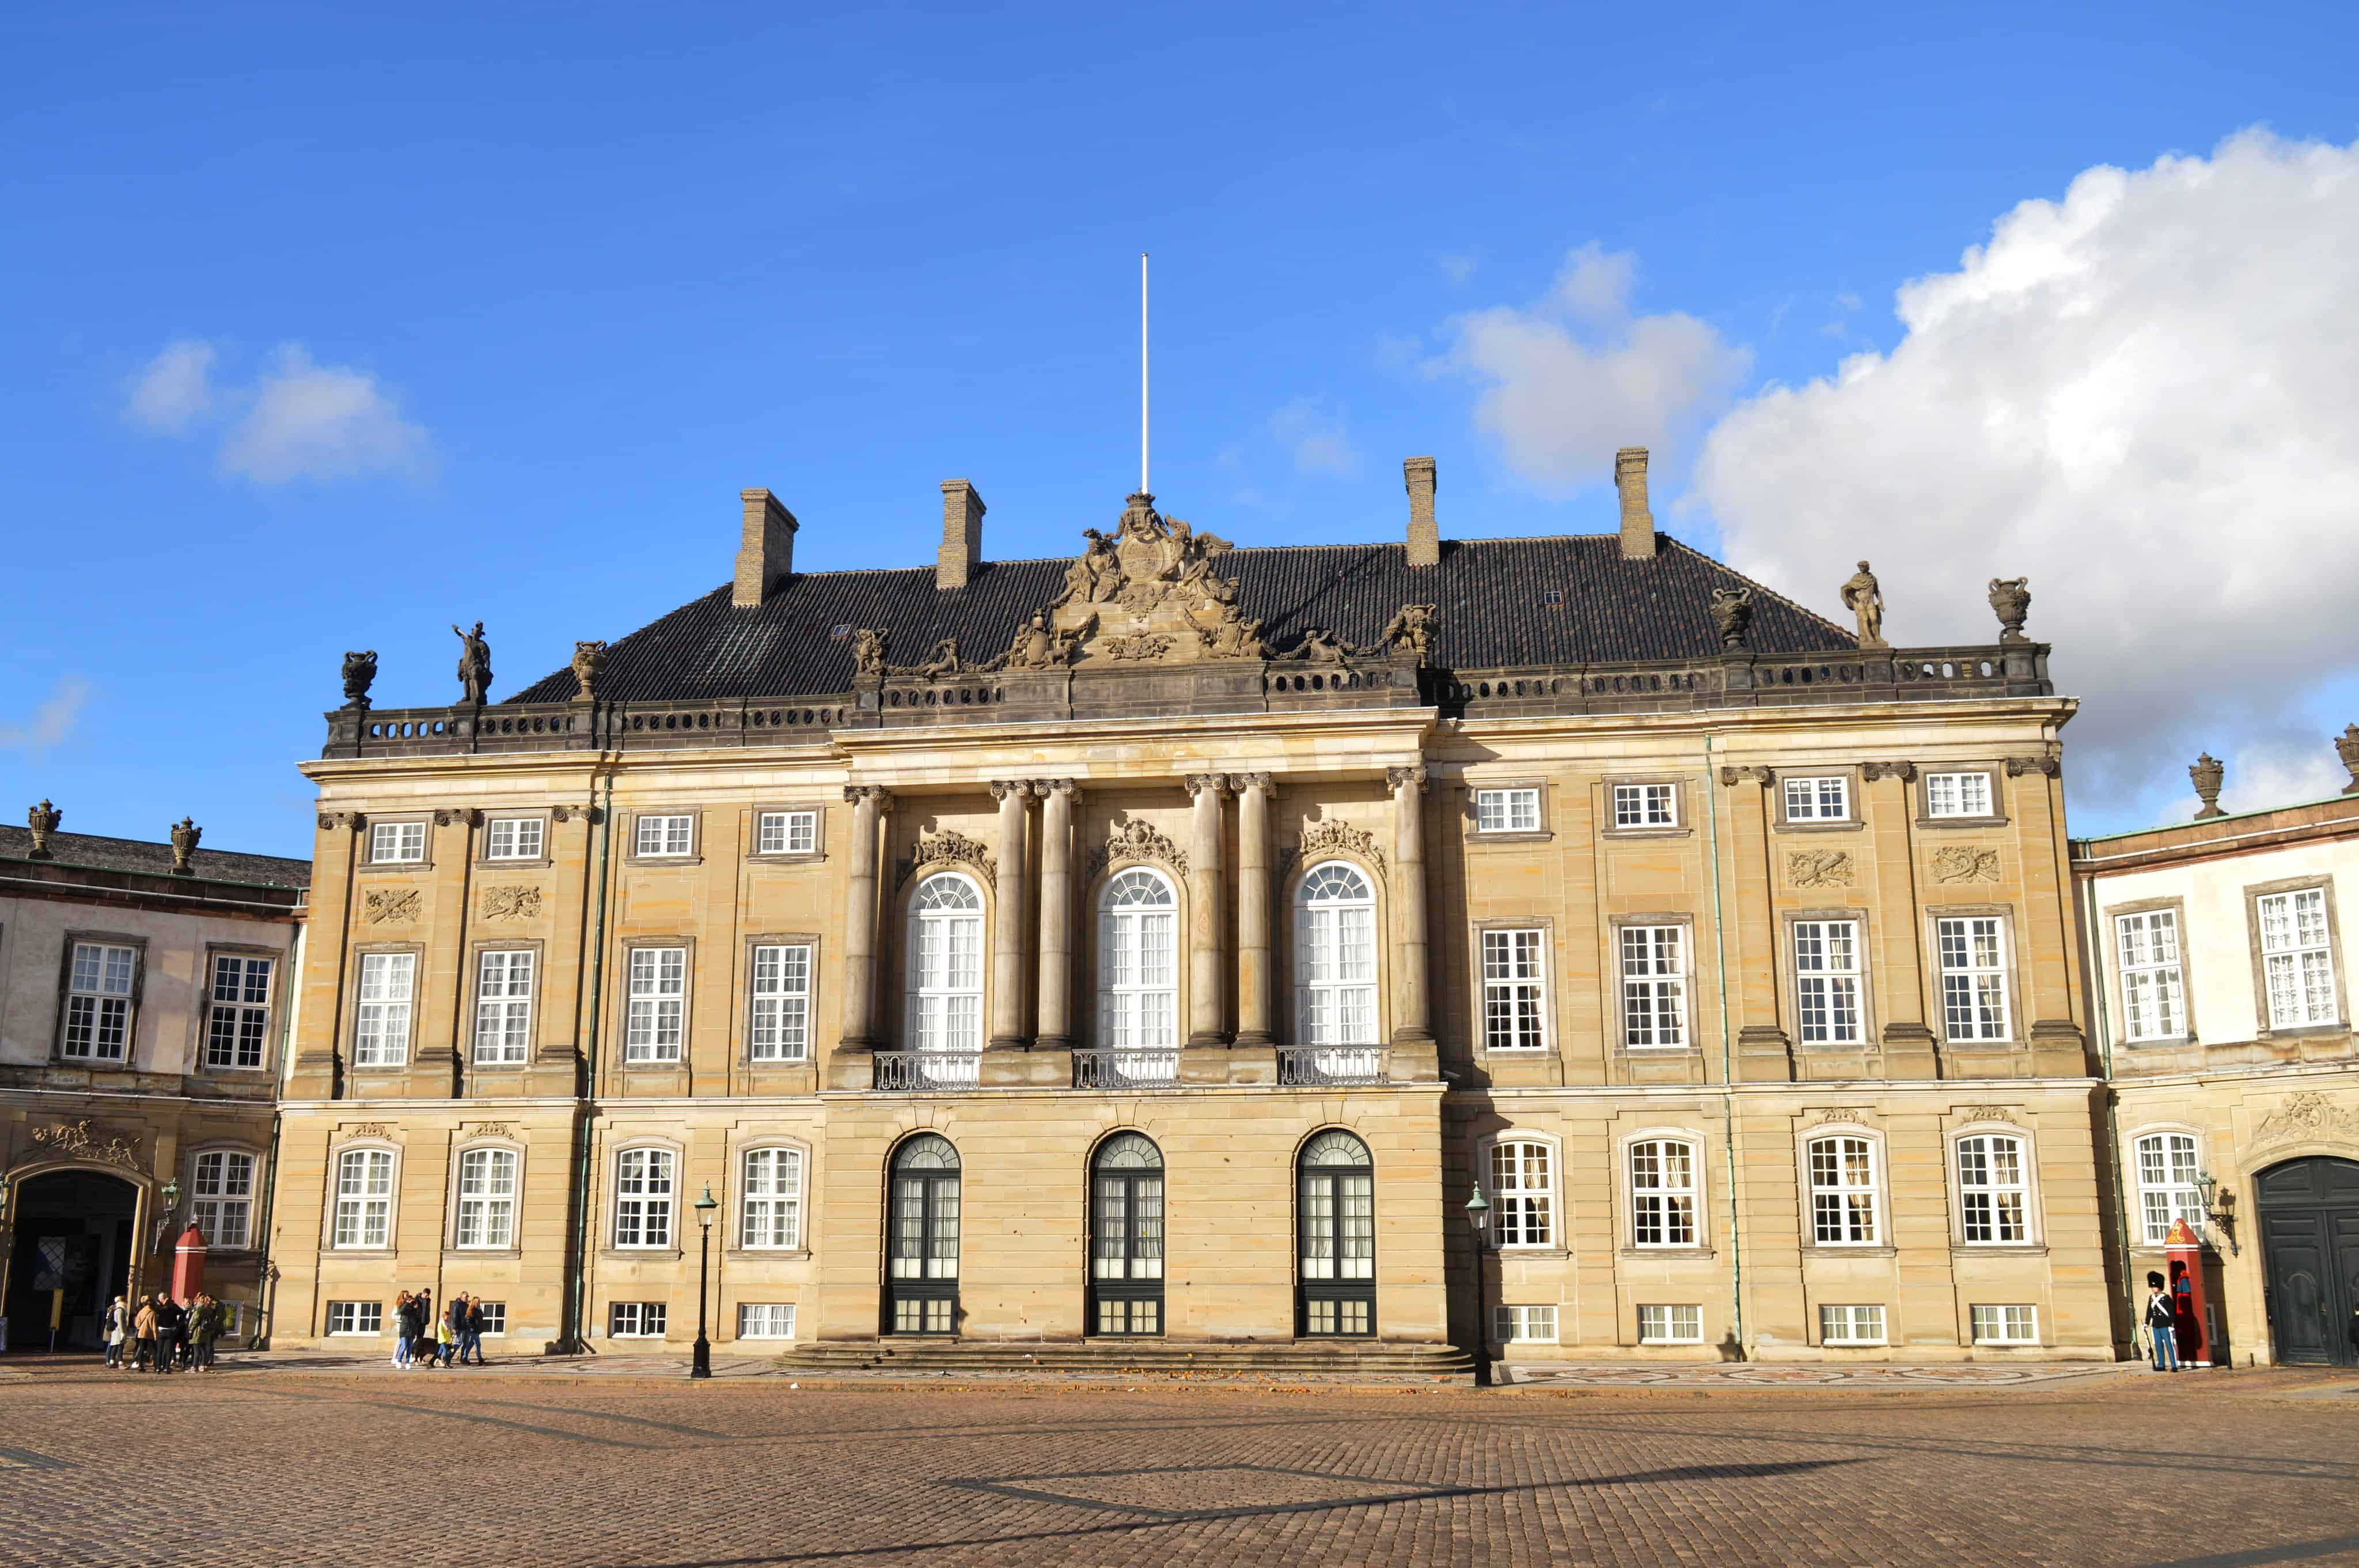 Amalienborg and Rosenborg Palaces